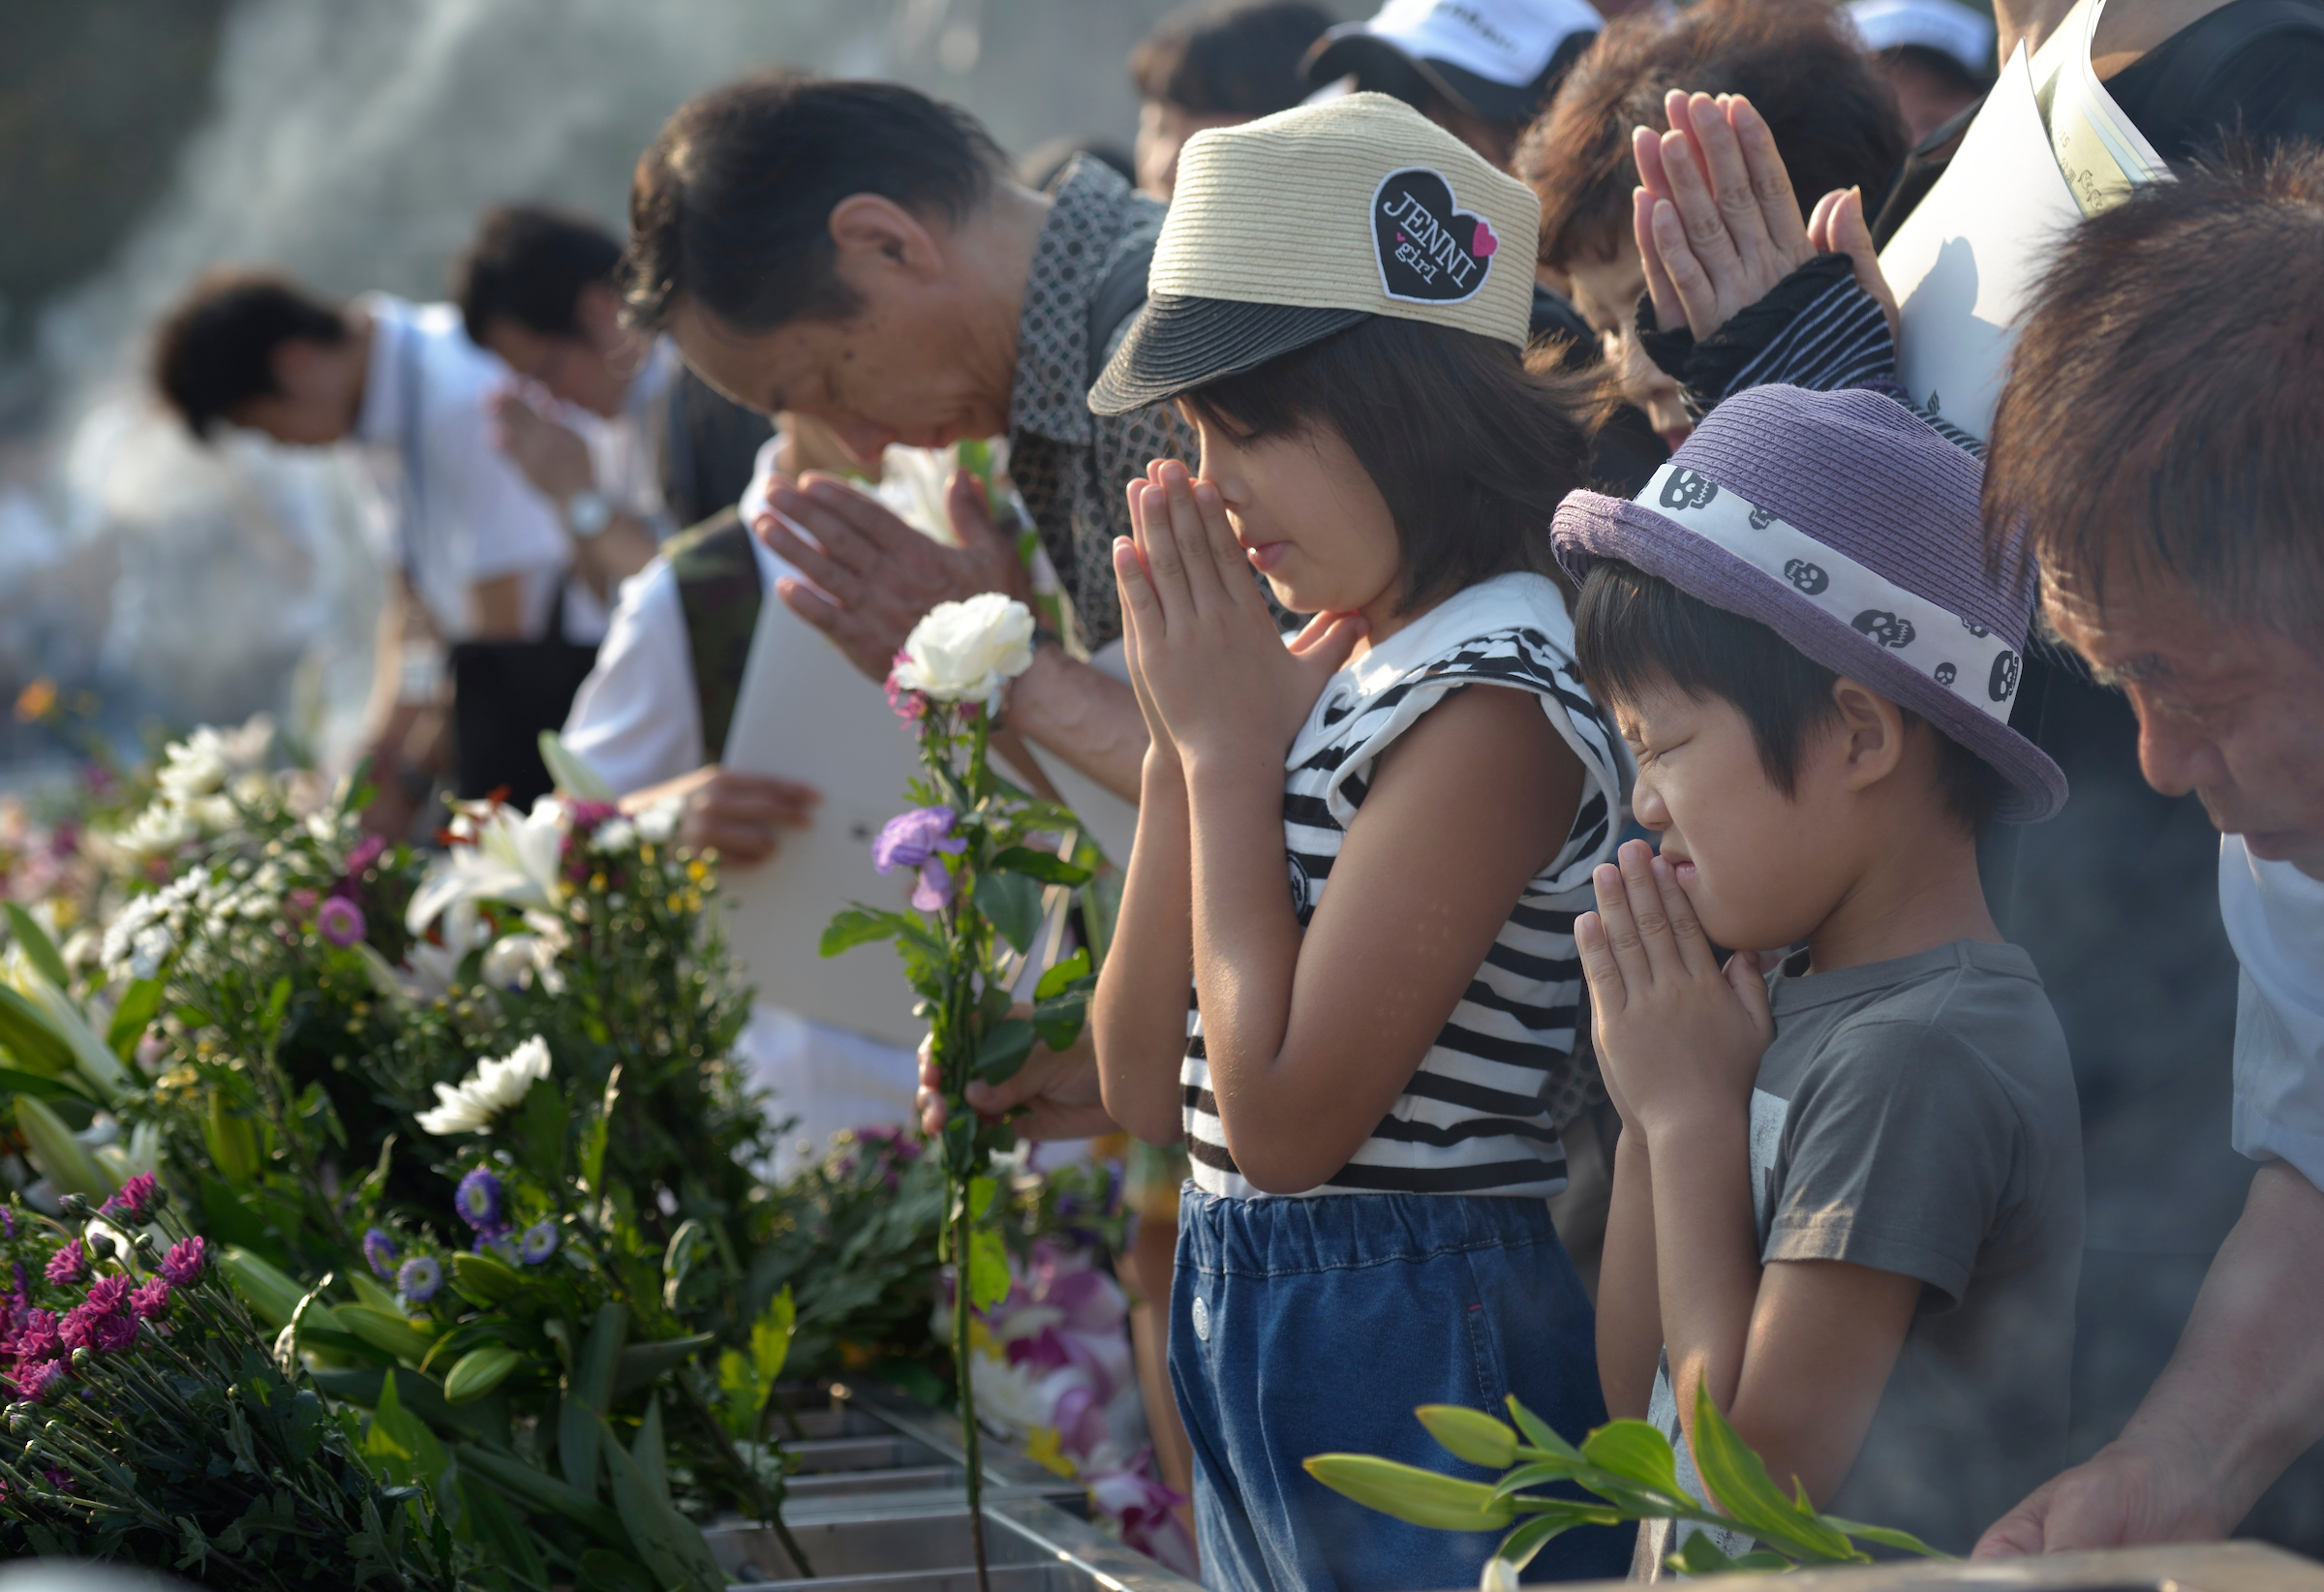 People praying on August 6, 2015, at a memorial in Hiroshima, Japan, that commemorates the victims of the atomic bombing of the city by the United States in 1945. PHOTO: PAUL JEFFREY